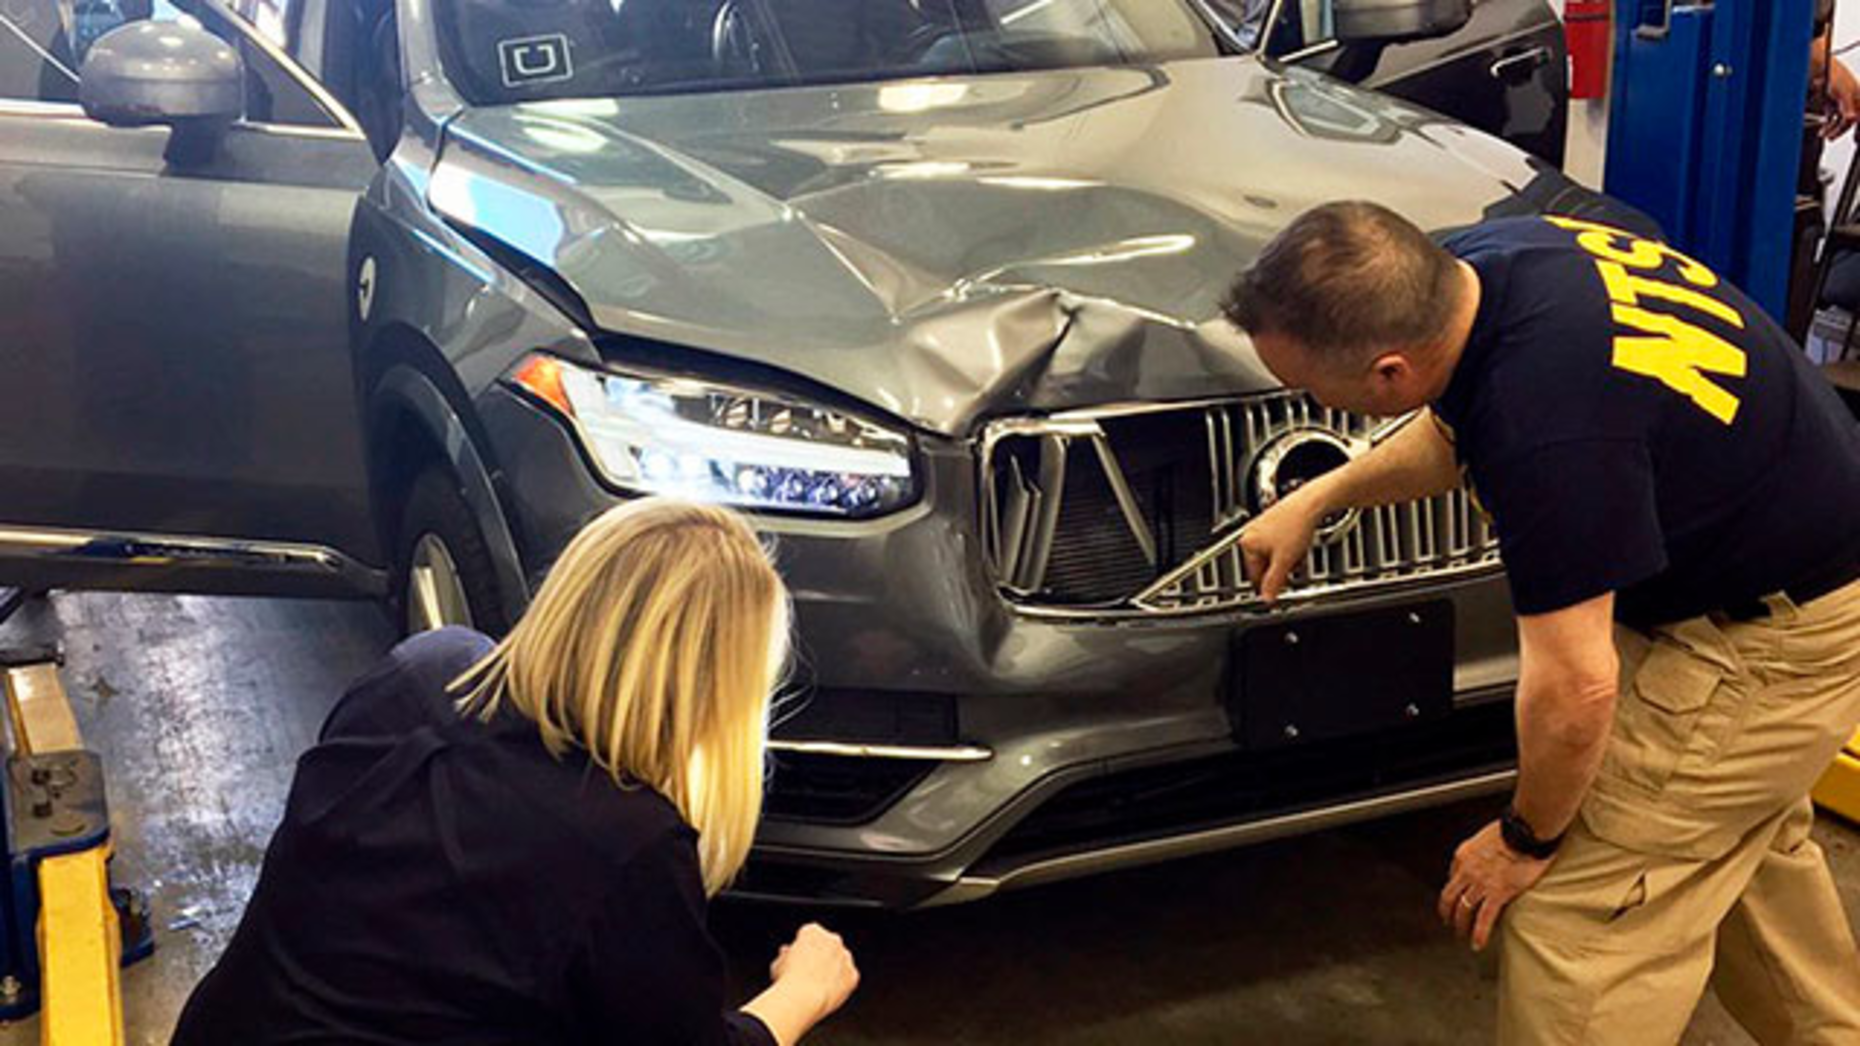 Investigators examined a self-driving Uber vehicle that fatally struck a woman in Tempe, Ariz., in March. Photo: AP